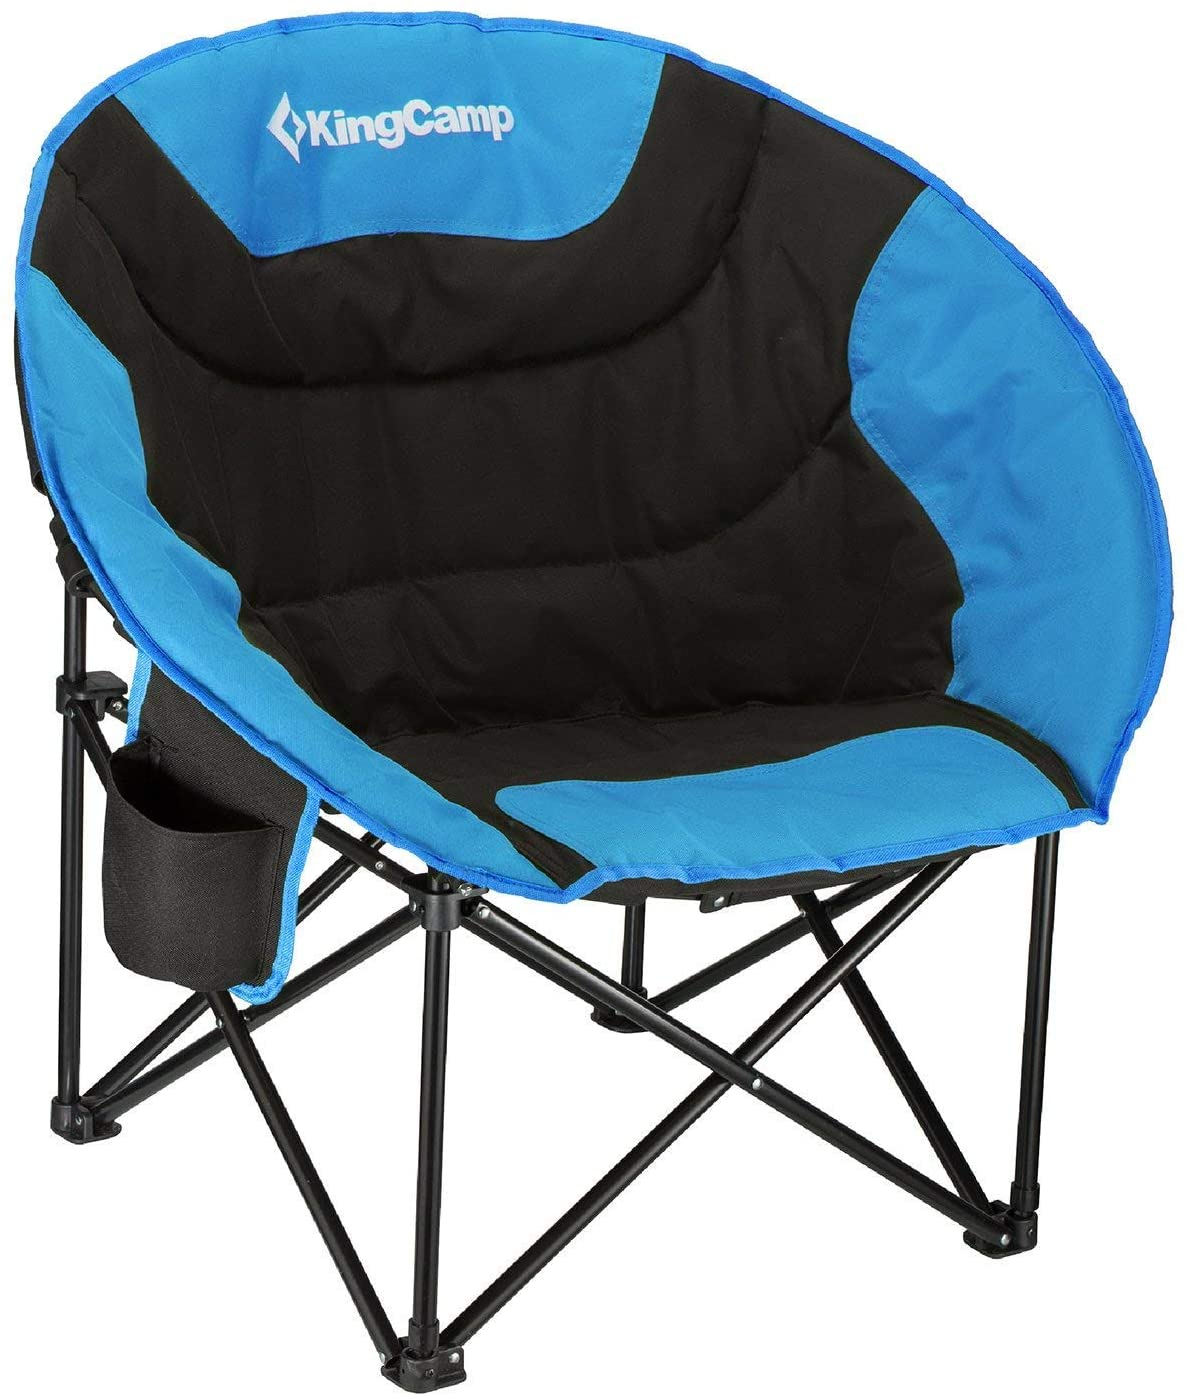 KingCamp Camping Moon Round Saucer Chair